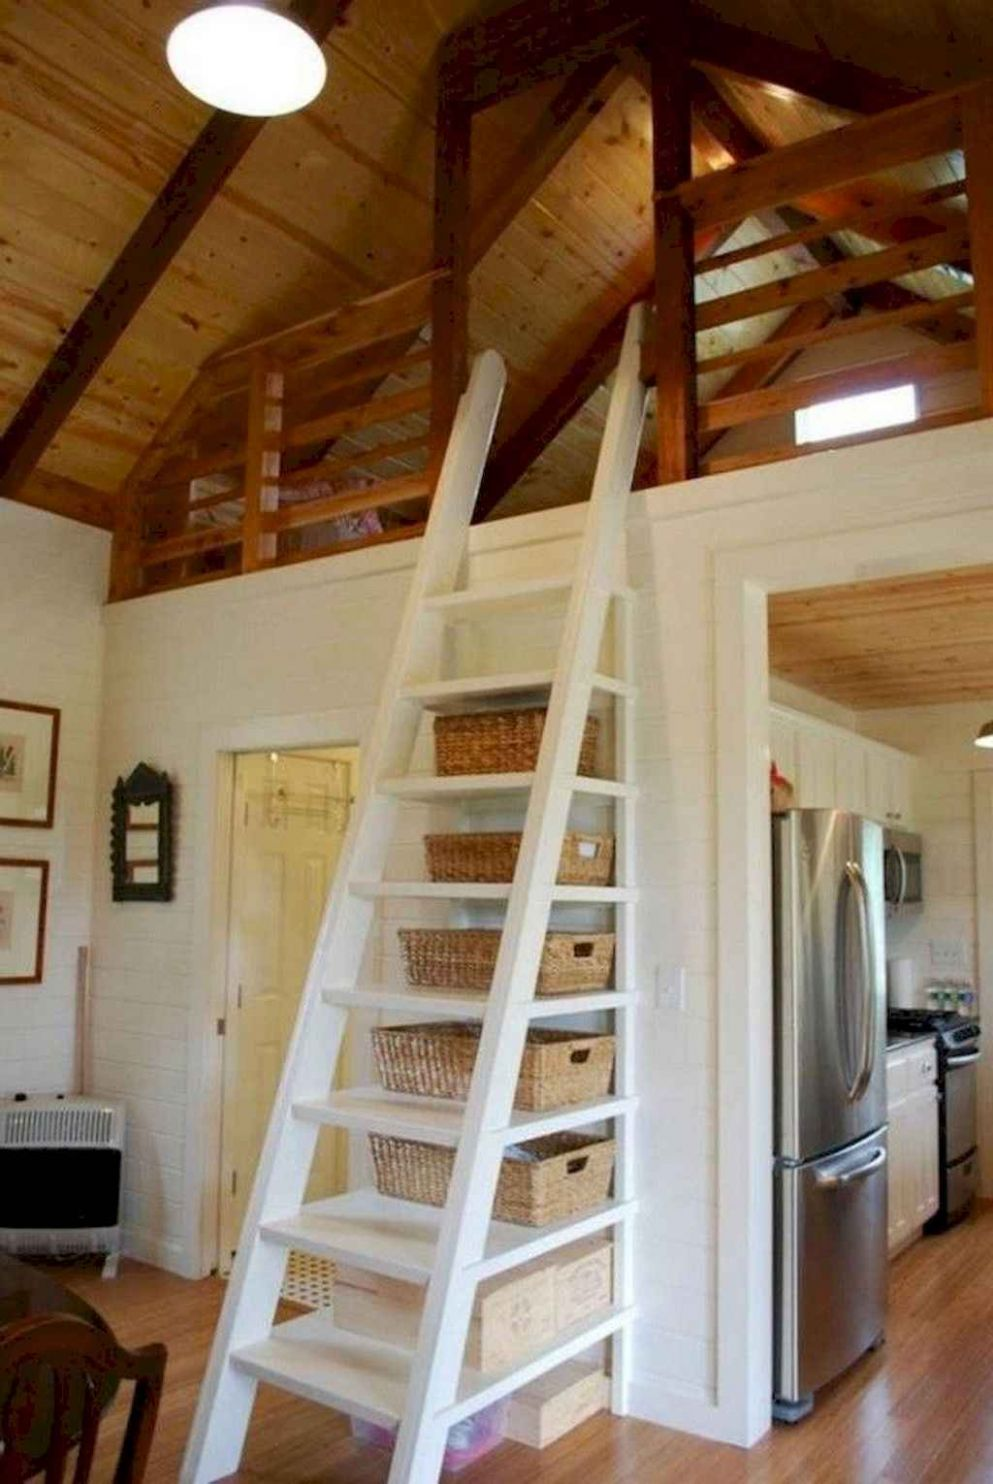 8 amazing loft stair for tiny house ideas - HomeSpecially - tiny house stairs